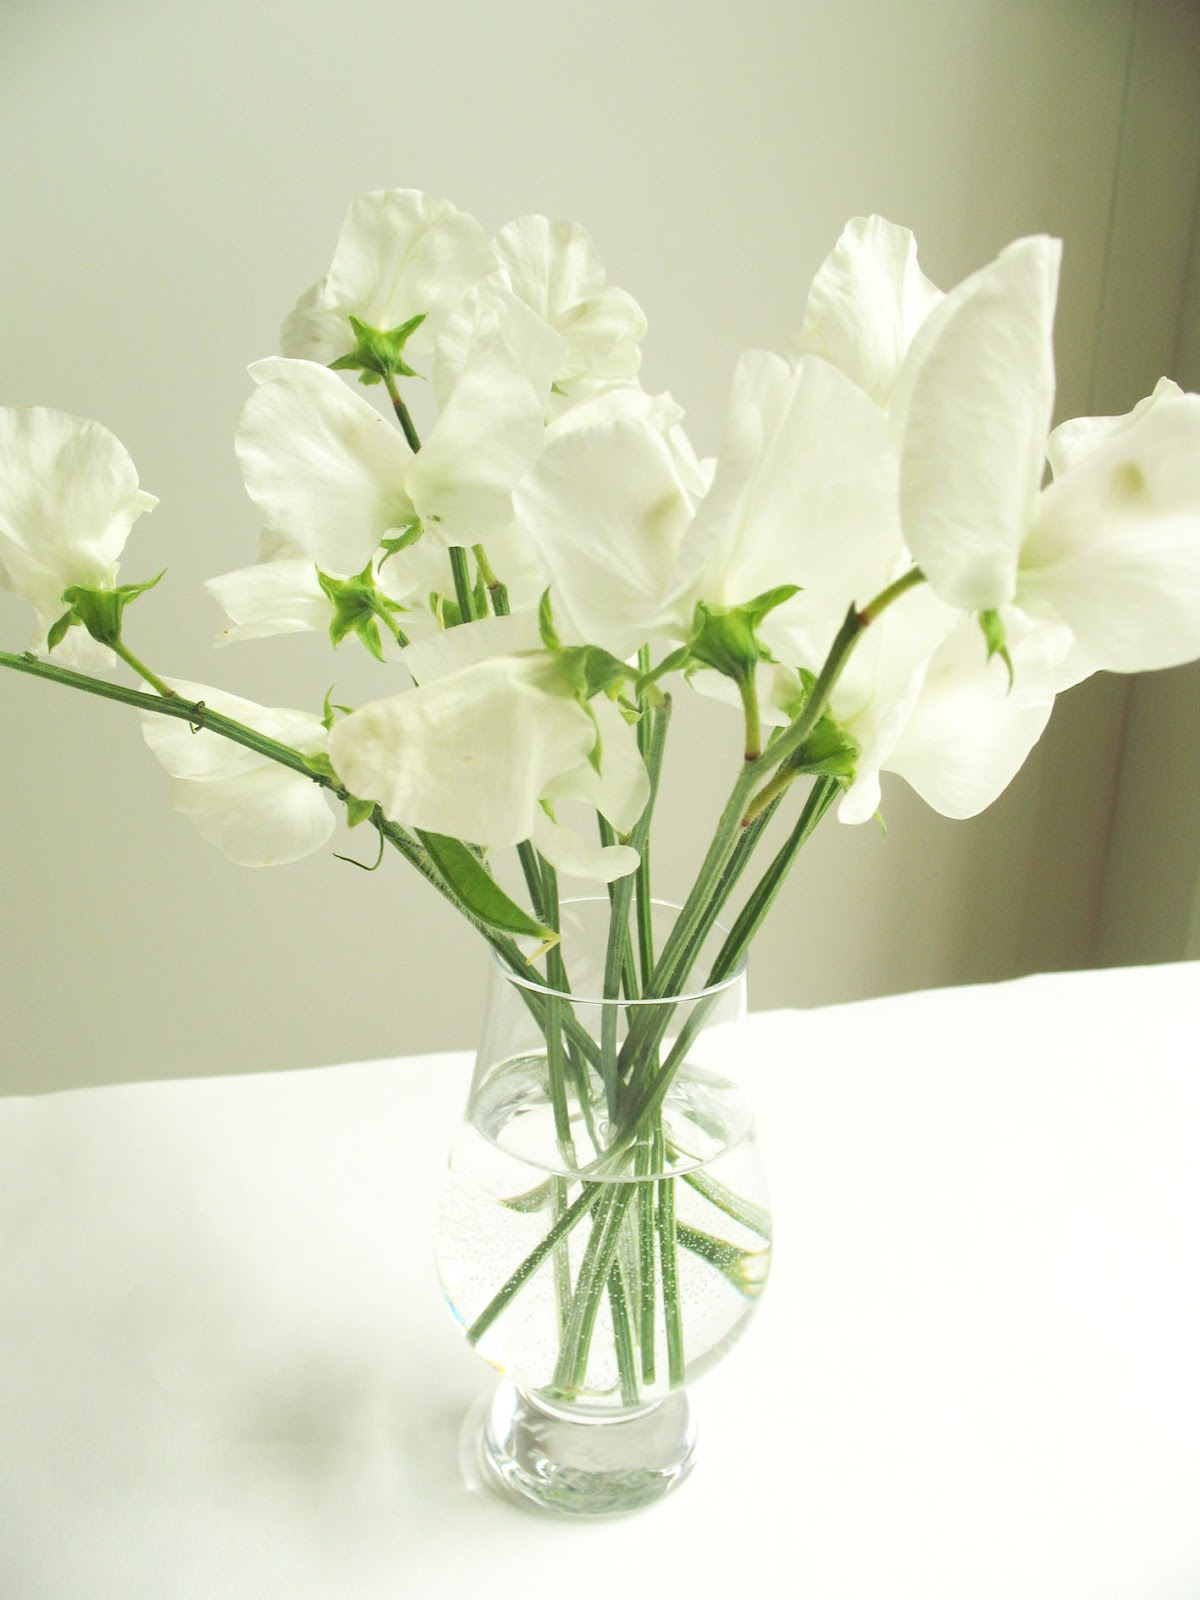 Inspiration for weddings invitations and stationeryWhite Sweet Pea Flower